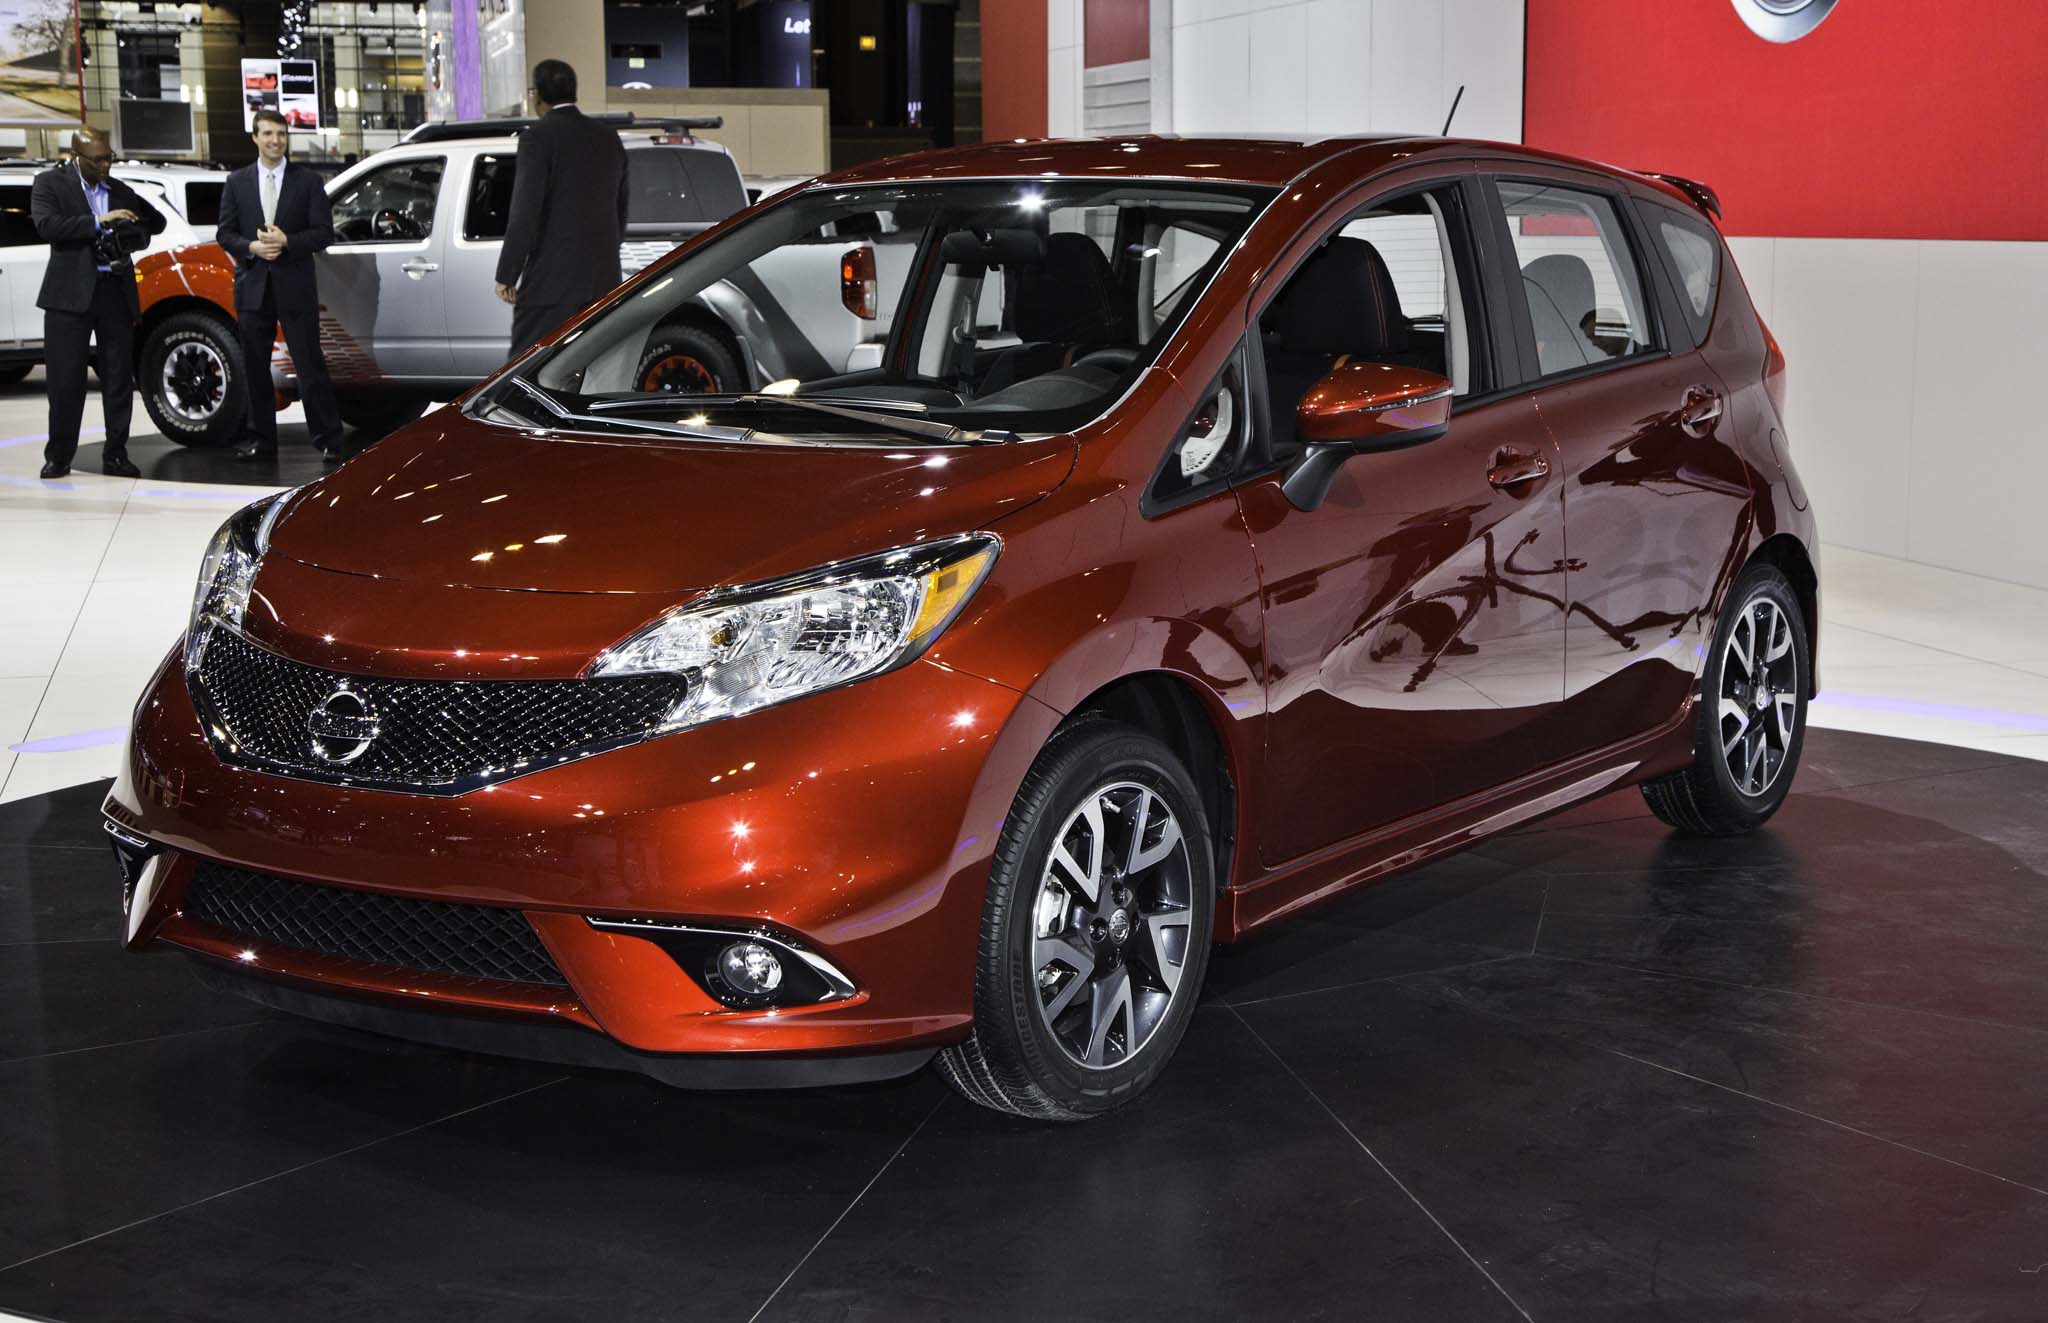 2015 nissan versa note starts at 14 990 sr from 18 340. Black Bedroom Furniture Sets. Home Design Ideas